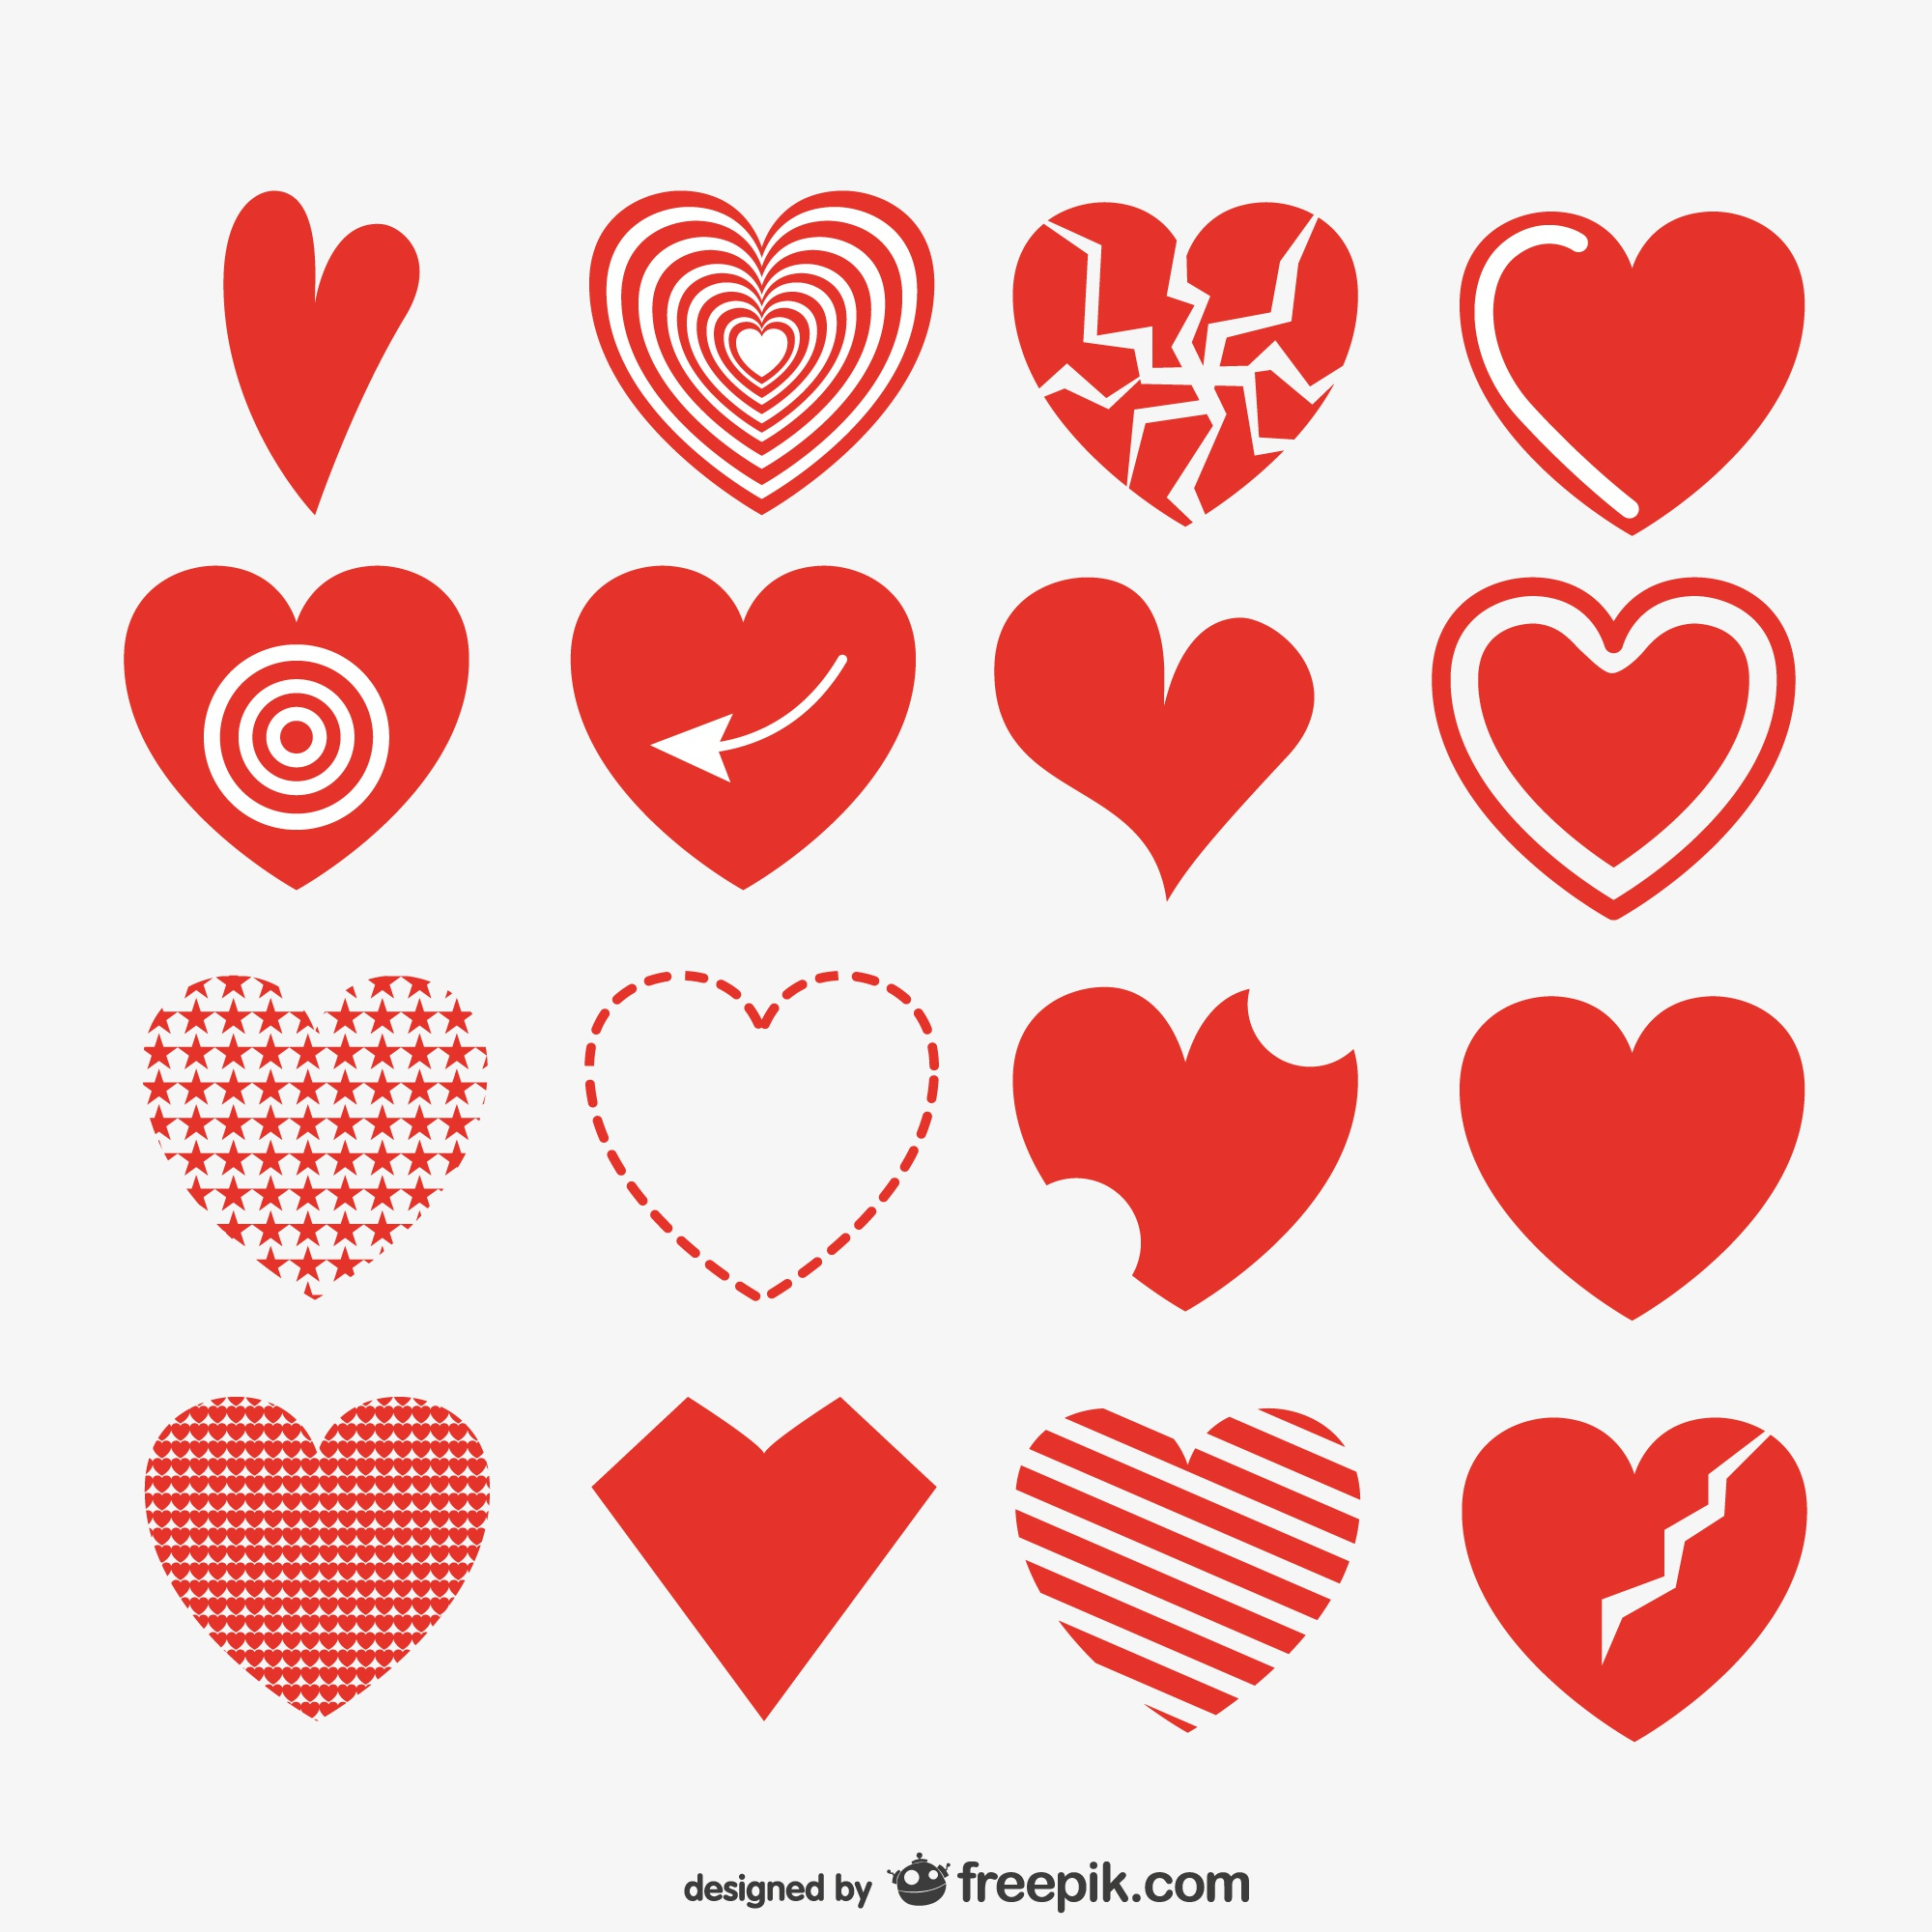 Red artistic hearts collection